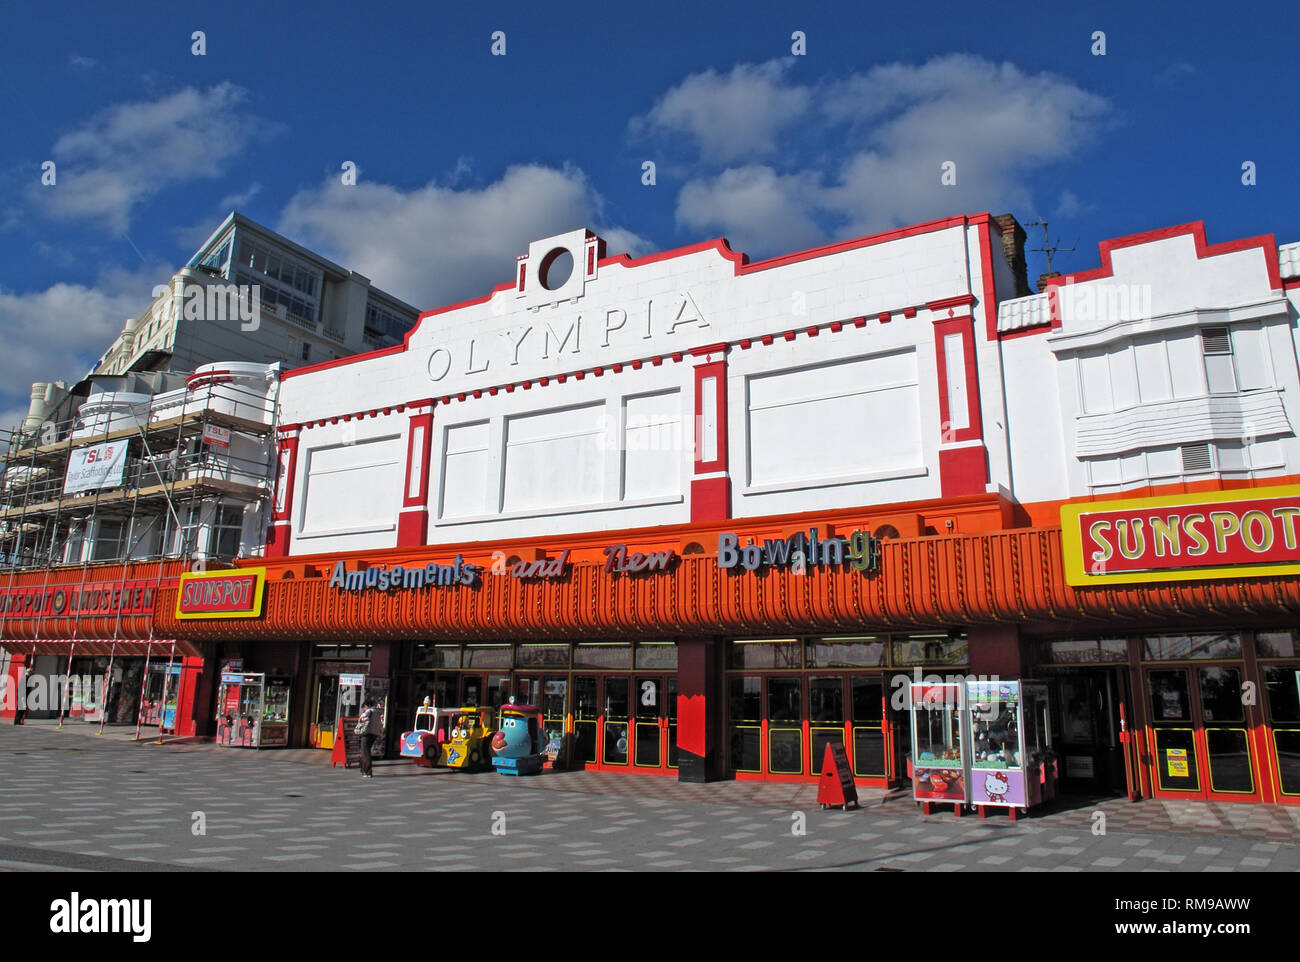 Olympia, Southend, Sunspot ,beachfront ,arcades, Amusements, Bowling, Essex, England, UK - Stock Image